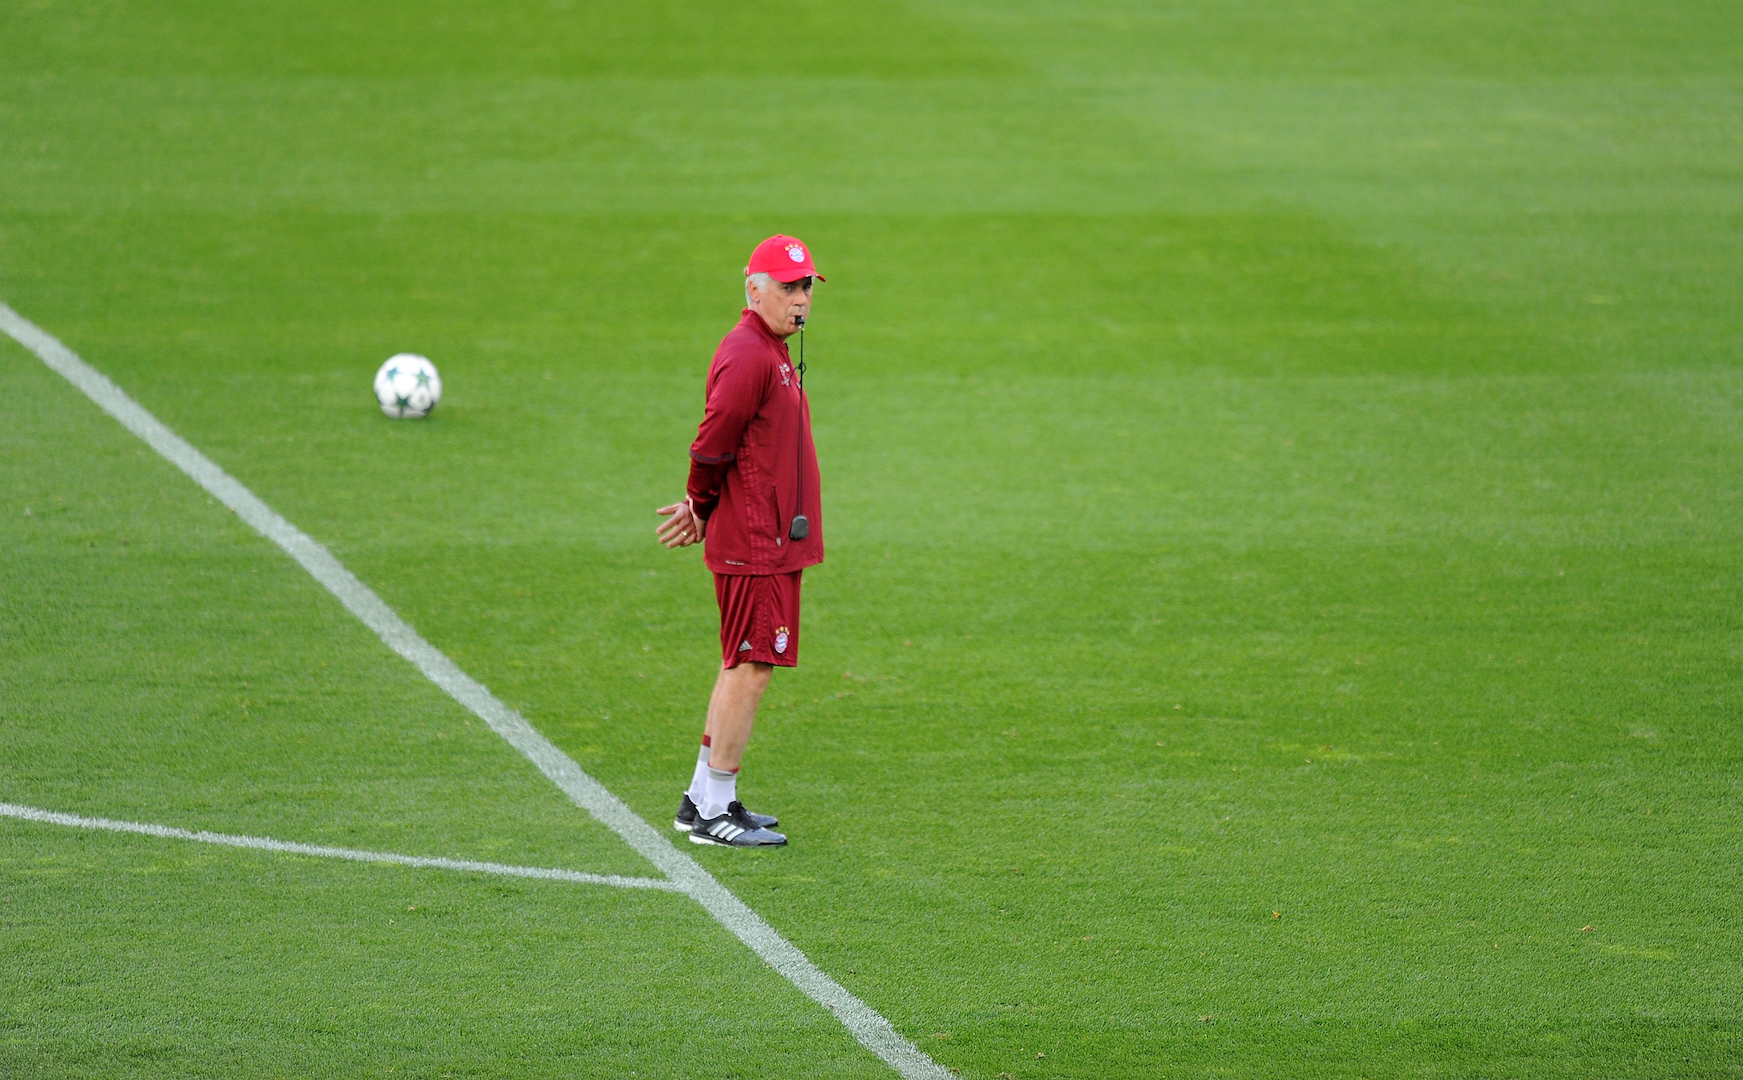 MADRID, SPAIN - SEPTEMBER 27: Manager Carlo Ancelotti of FC Bayern Muenchen looks on during a team training session at Vicente Calderon Stadium ahead of the UEFA Champions League Group D match between Club Atletico de Madrid and FC Bayern Muenchen on September 27, 2016 in Madrid, Spain. (Photo by Denis Doyle/Getty Images)